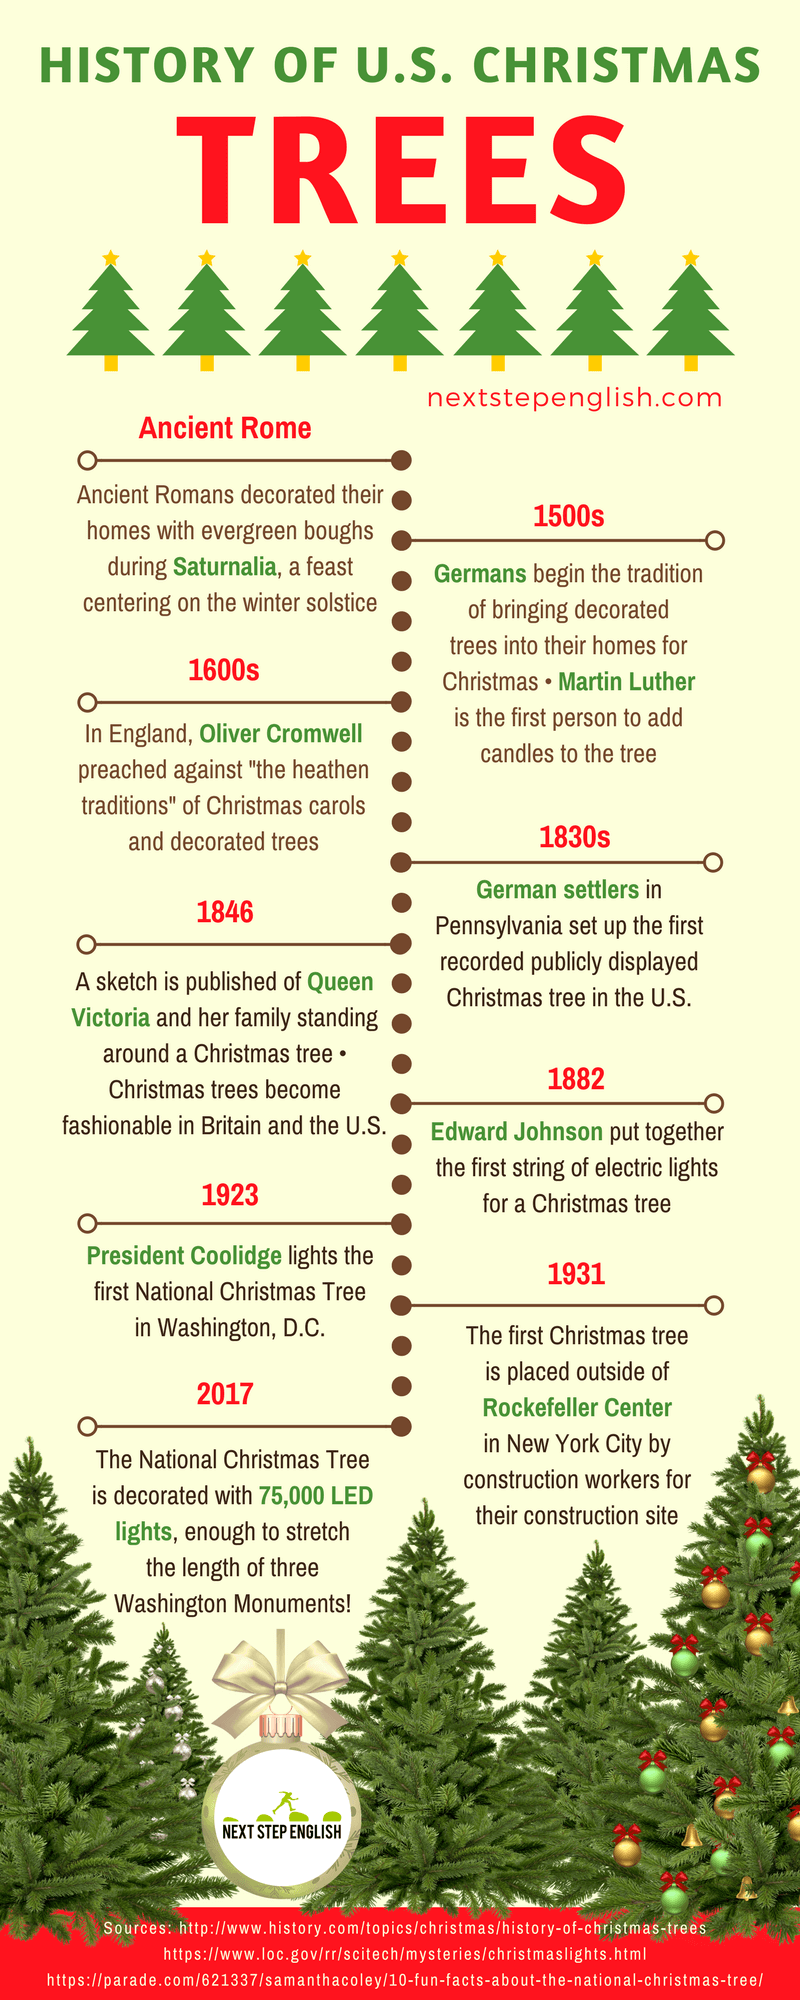 Real History Of Christmas.Christmas Tree History With Timeline Infographic History